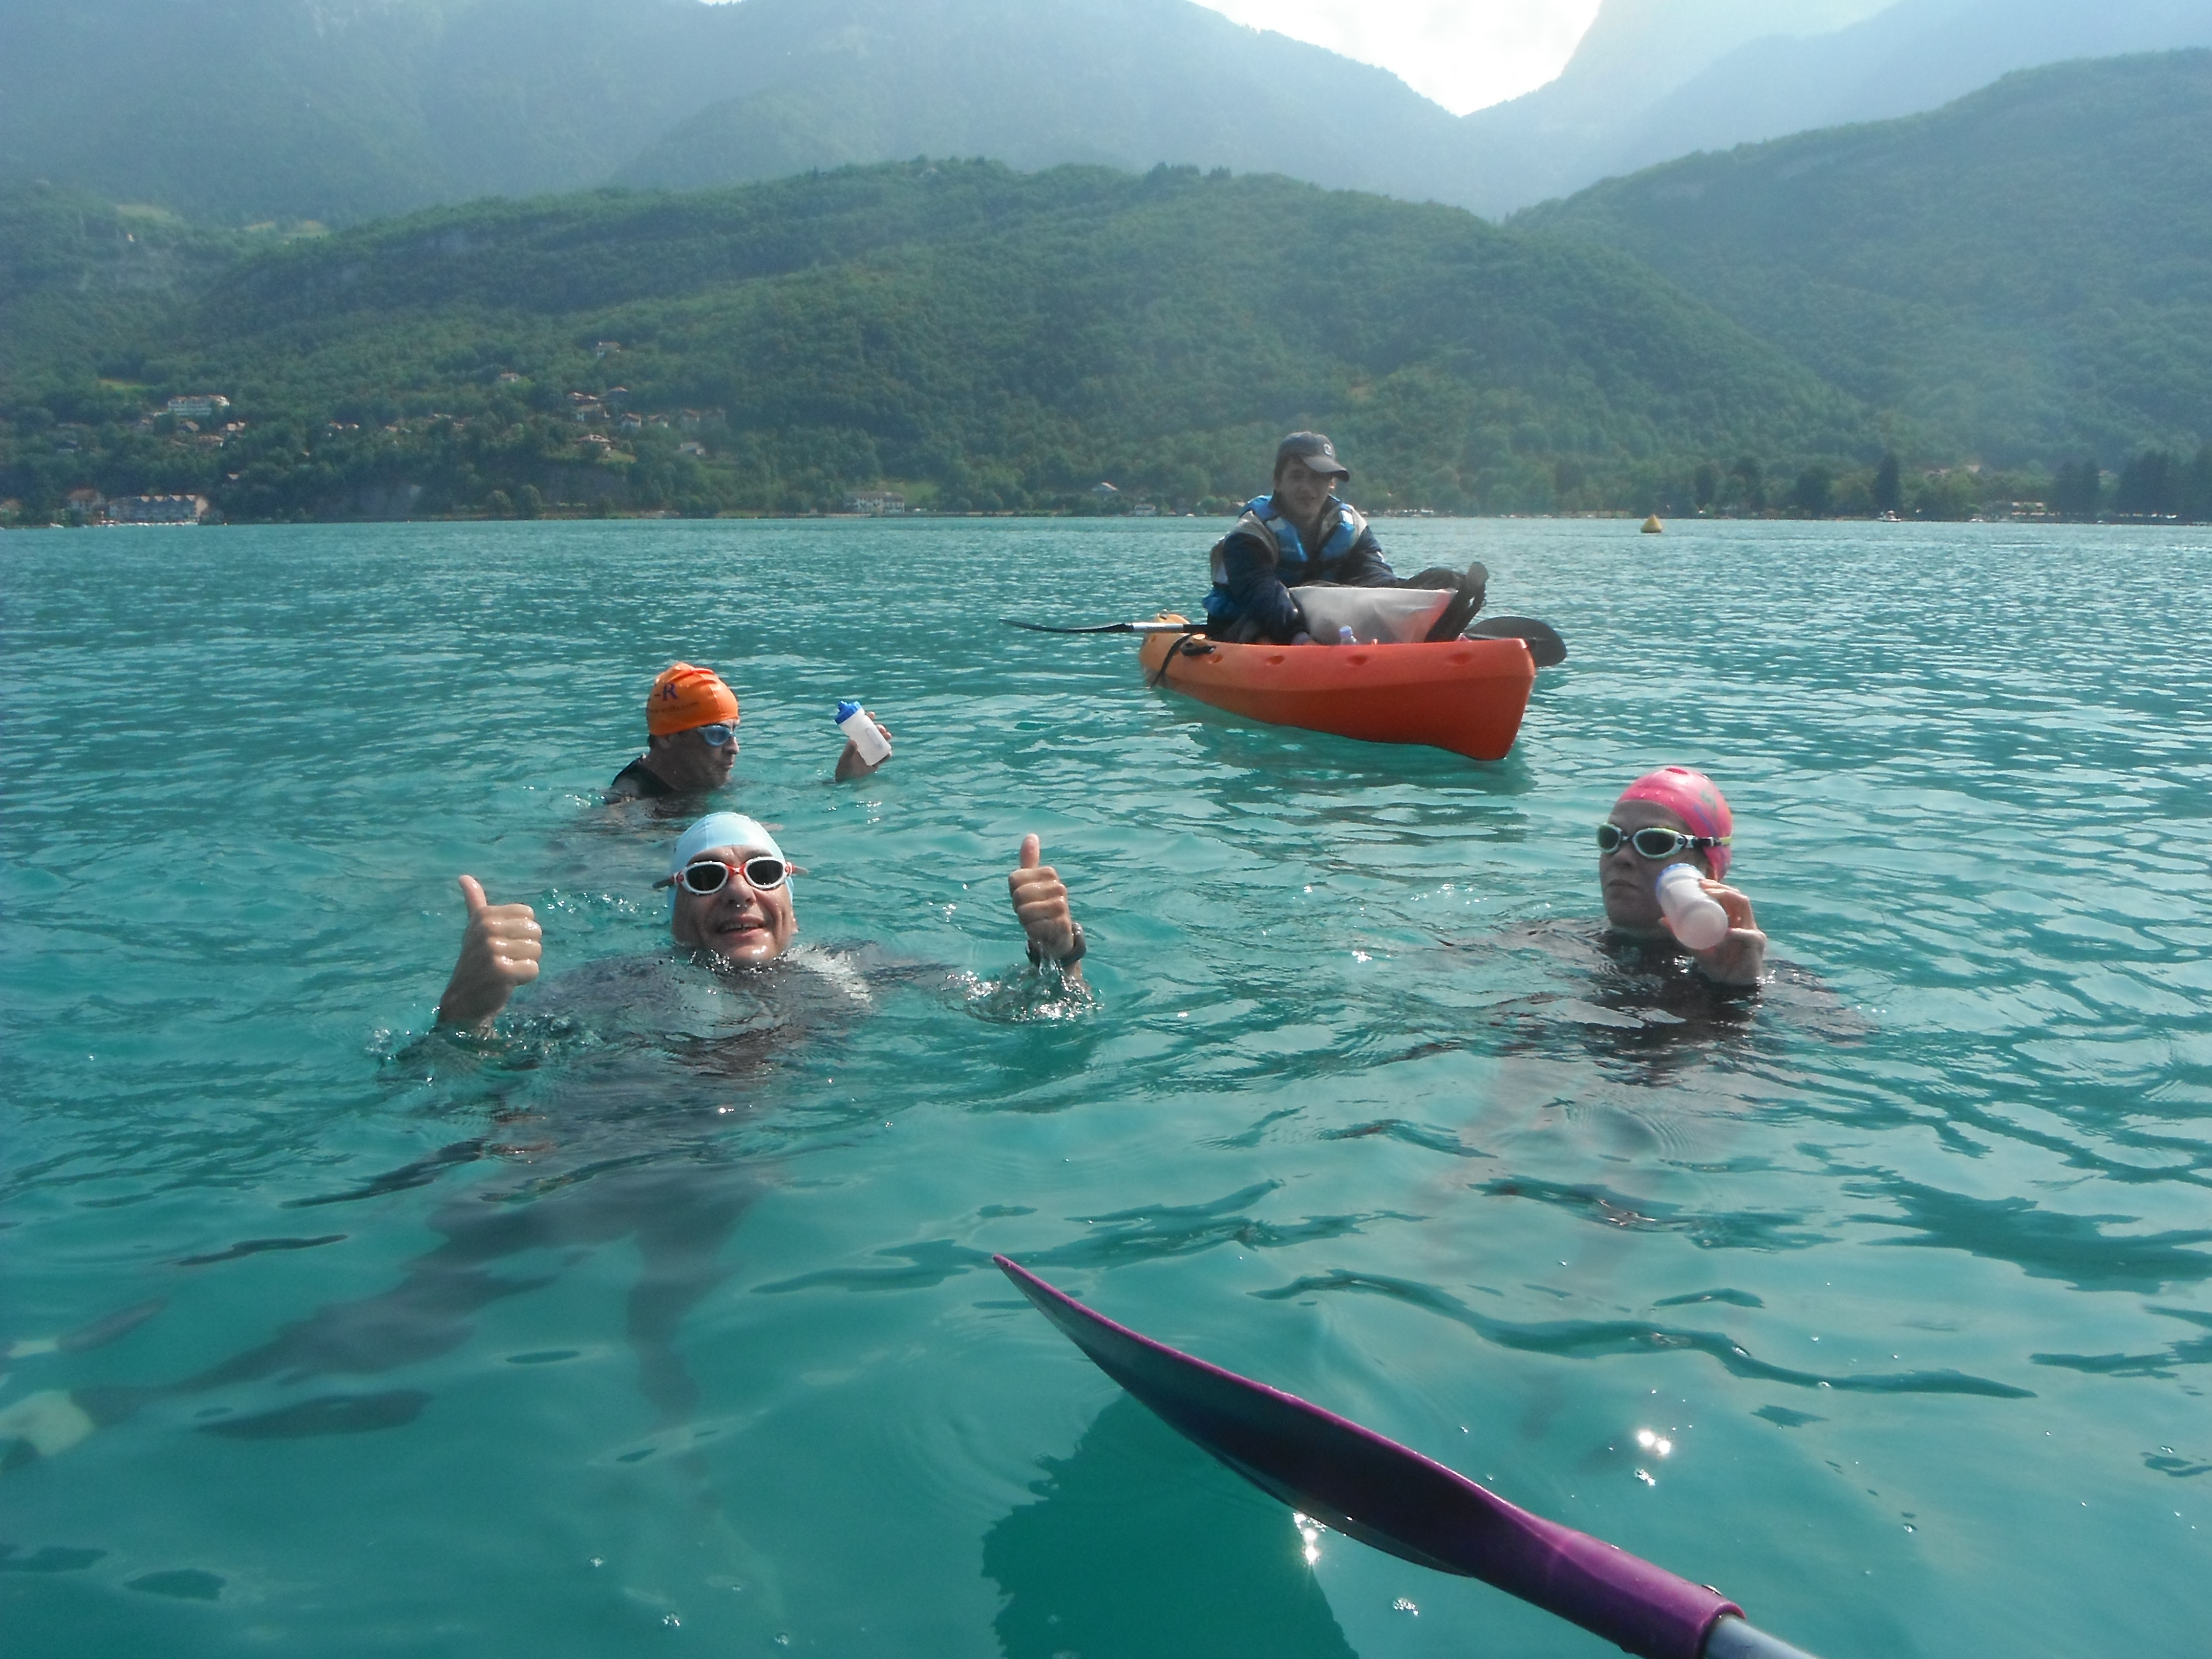 Feed stop for the Annecy solo swimmers